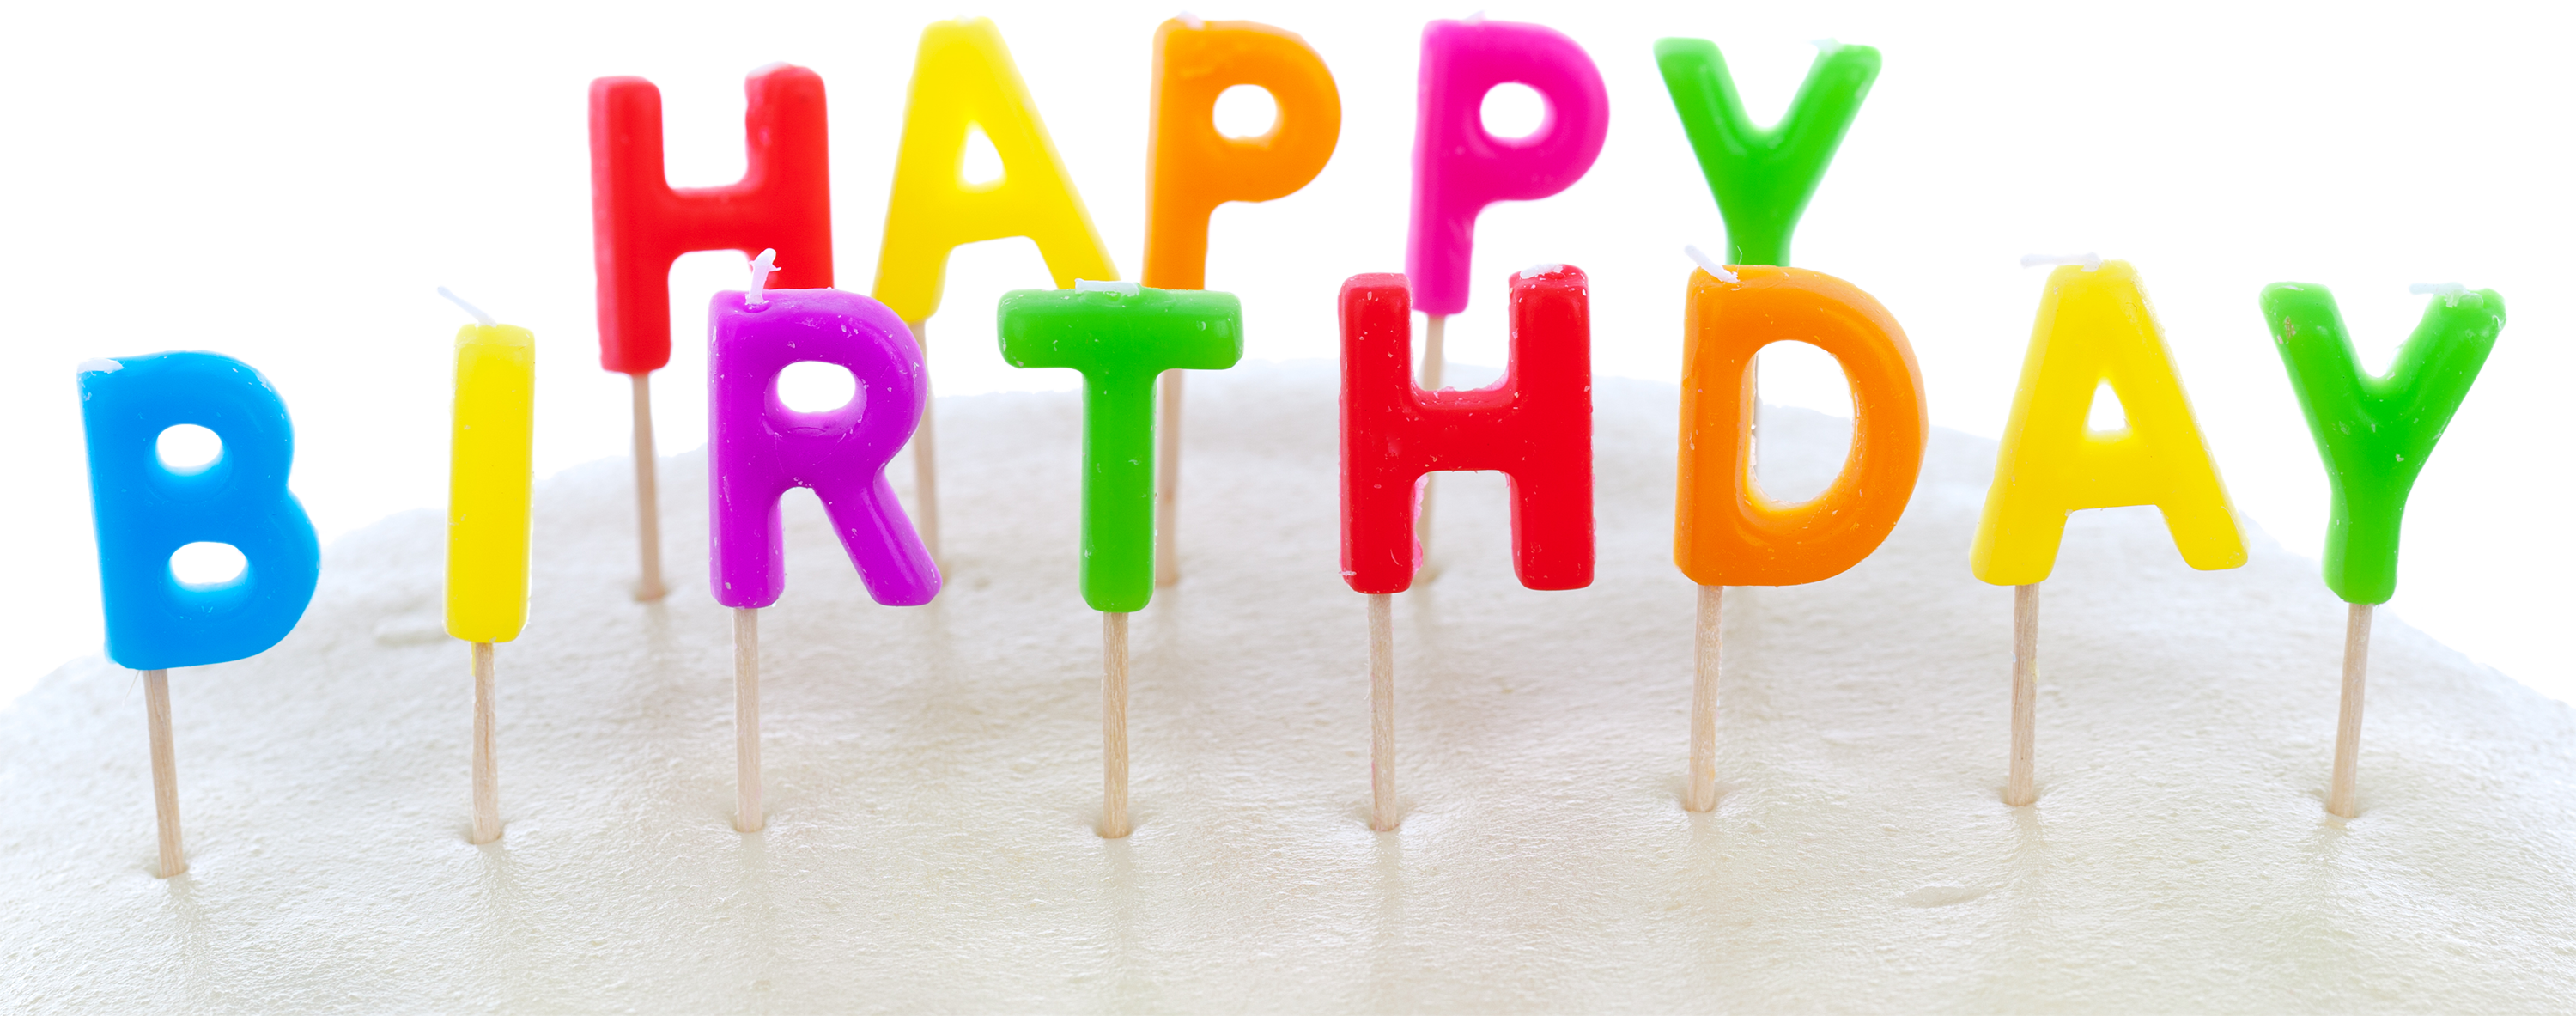 Png High-quality Download Birthday Candles image #31054